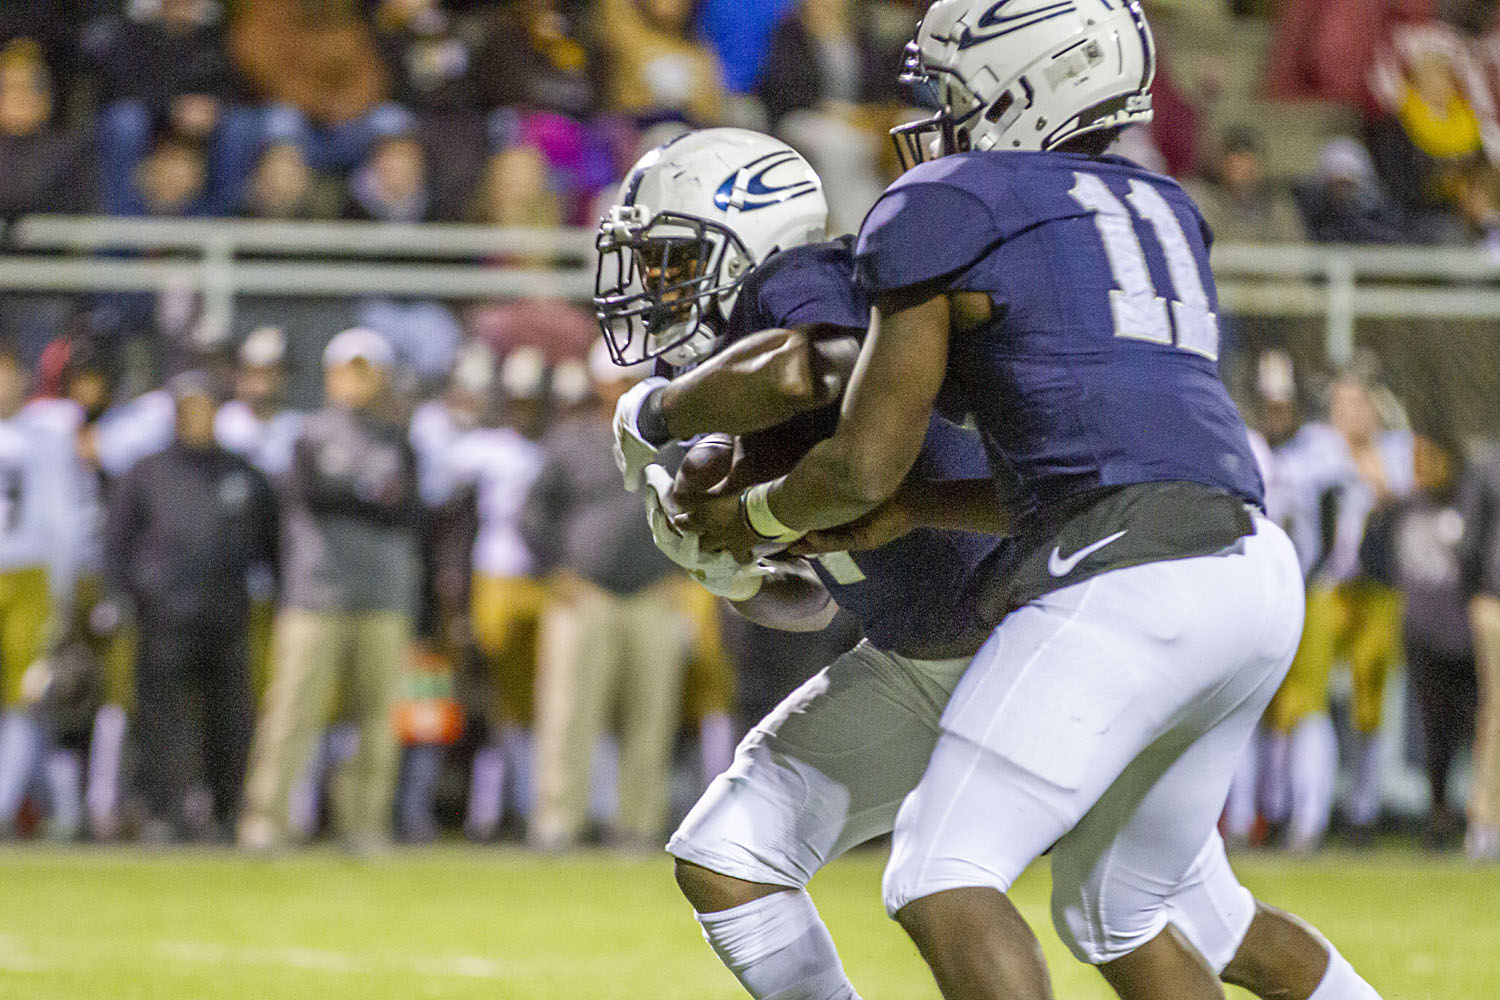 Oxford records first win over Clay-Chalkville in close to a decade, ends Cougars' season